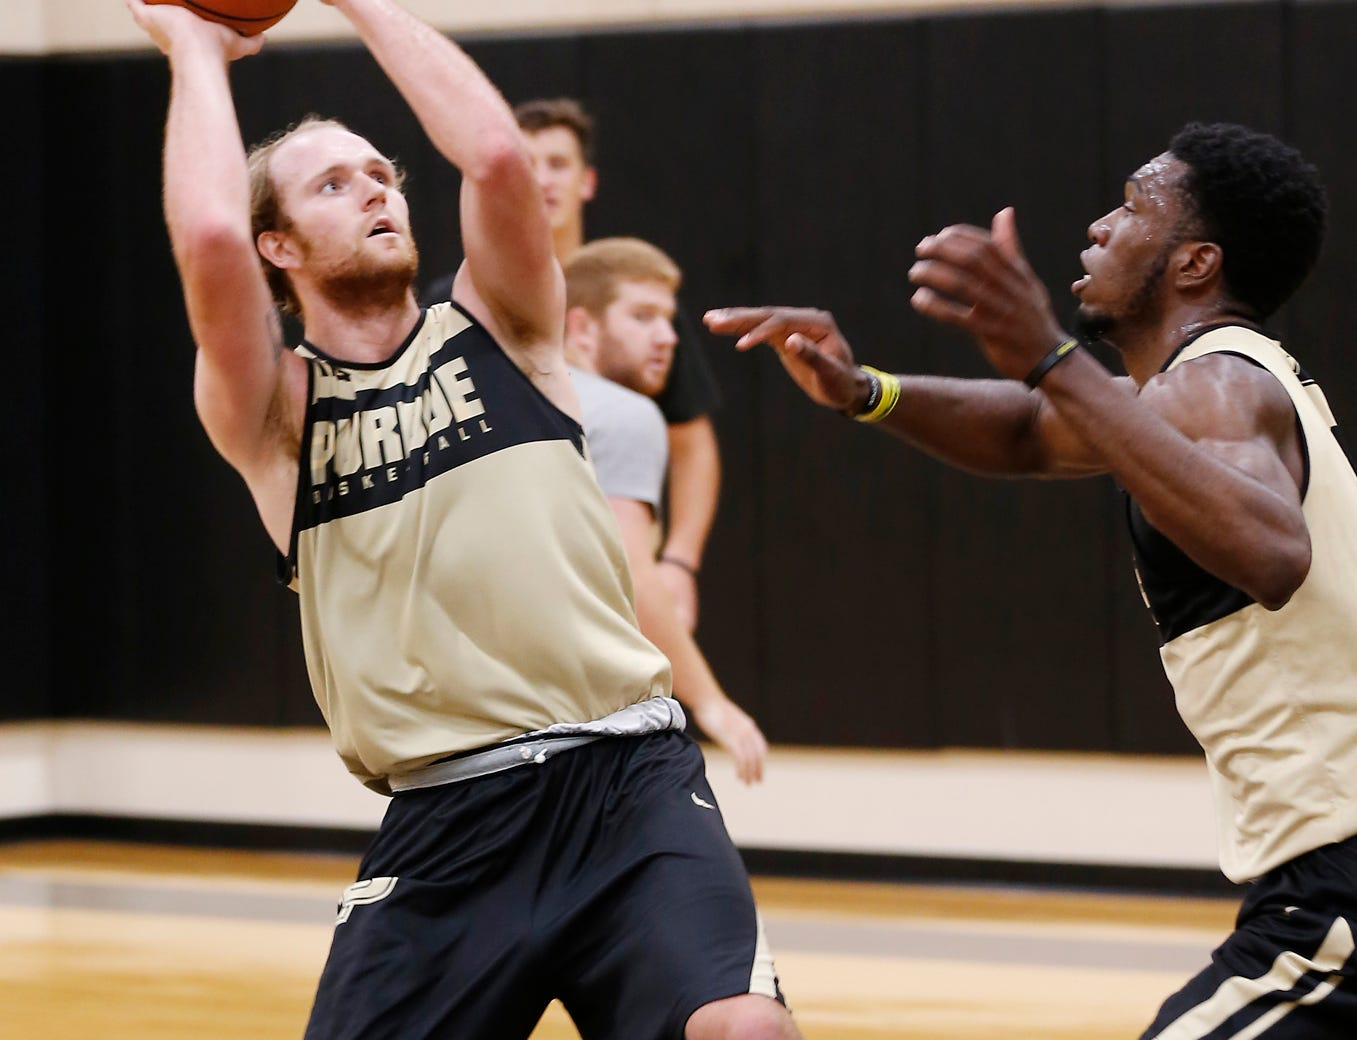 Evan Boudreaux puts up a shot over Emmanuel Dowuona during the first official practice of the season for Purdue men's basketball Tuesday, September 25, 2018, at Cardinal Court in Mackey Arena.